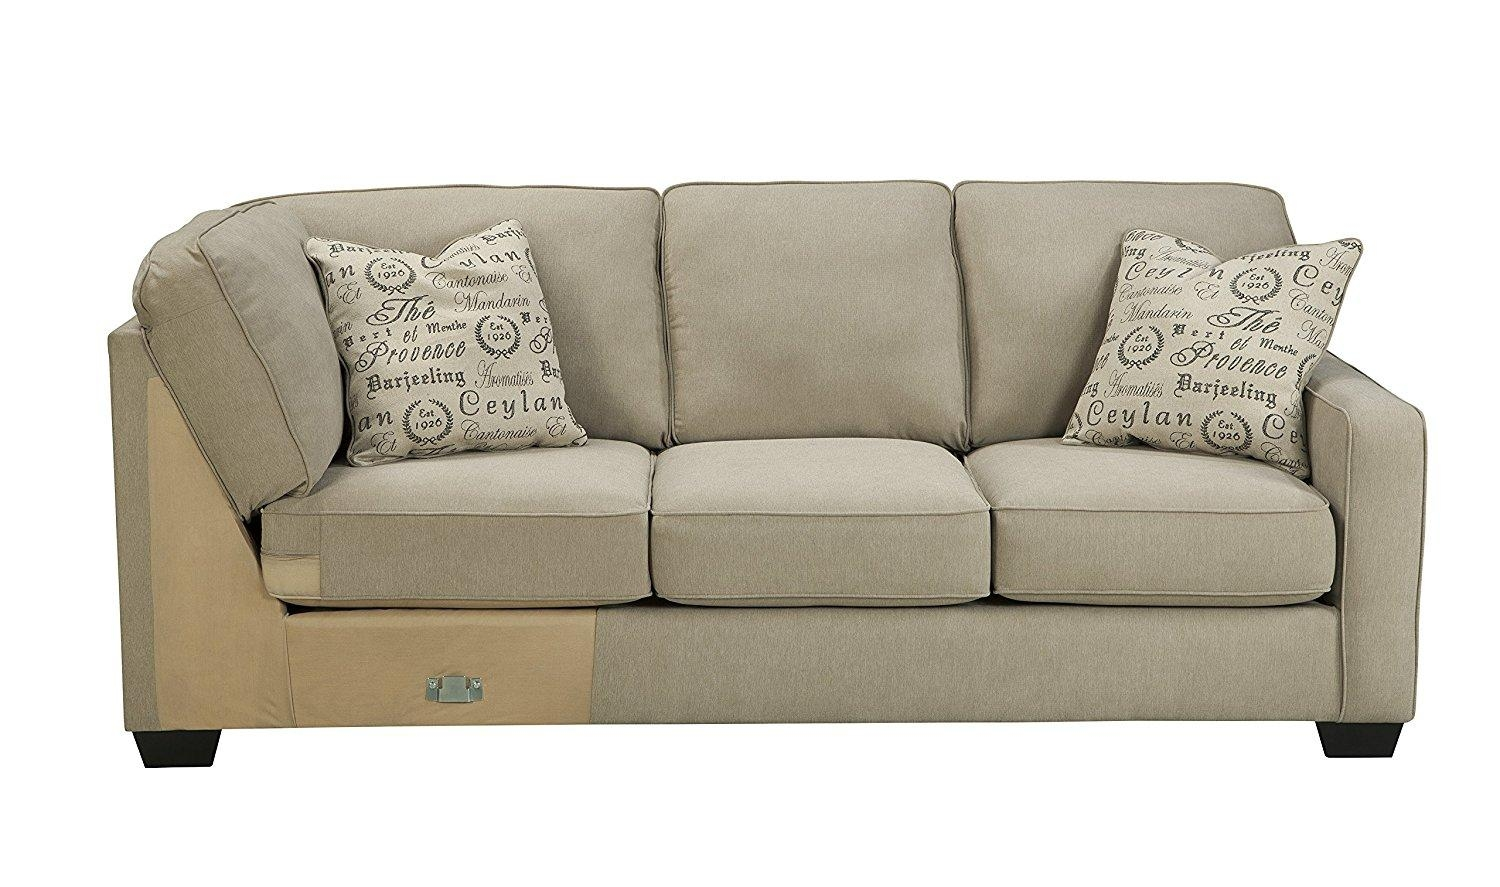 Cloud Magnetic Floating Sofa Criteria Sectional Sofas Chicago Four Throughout Cloud Sectional Sofas (View 11 of 20)